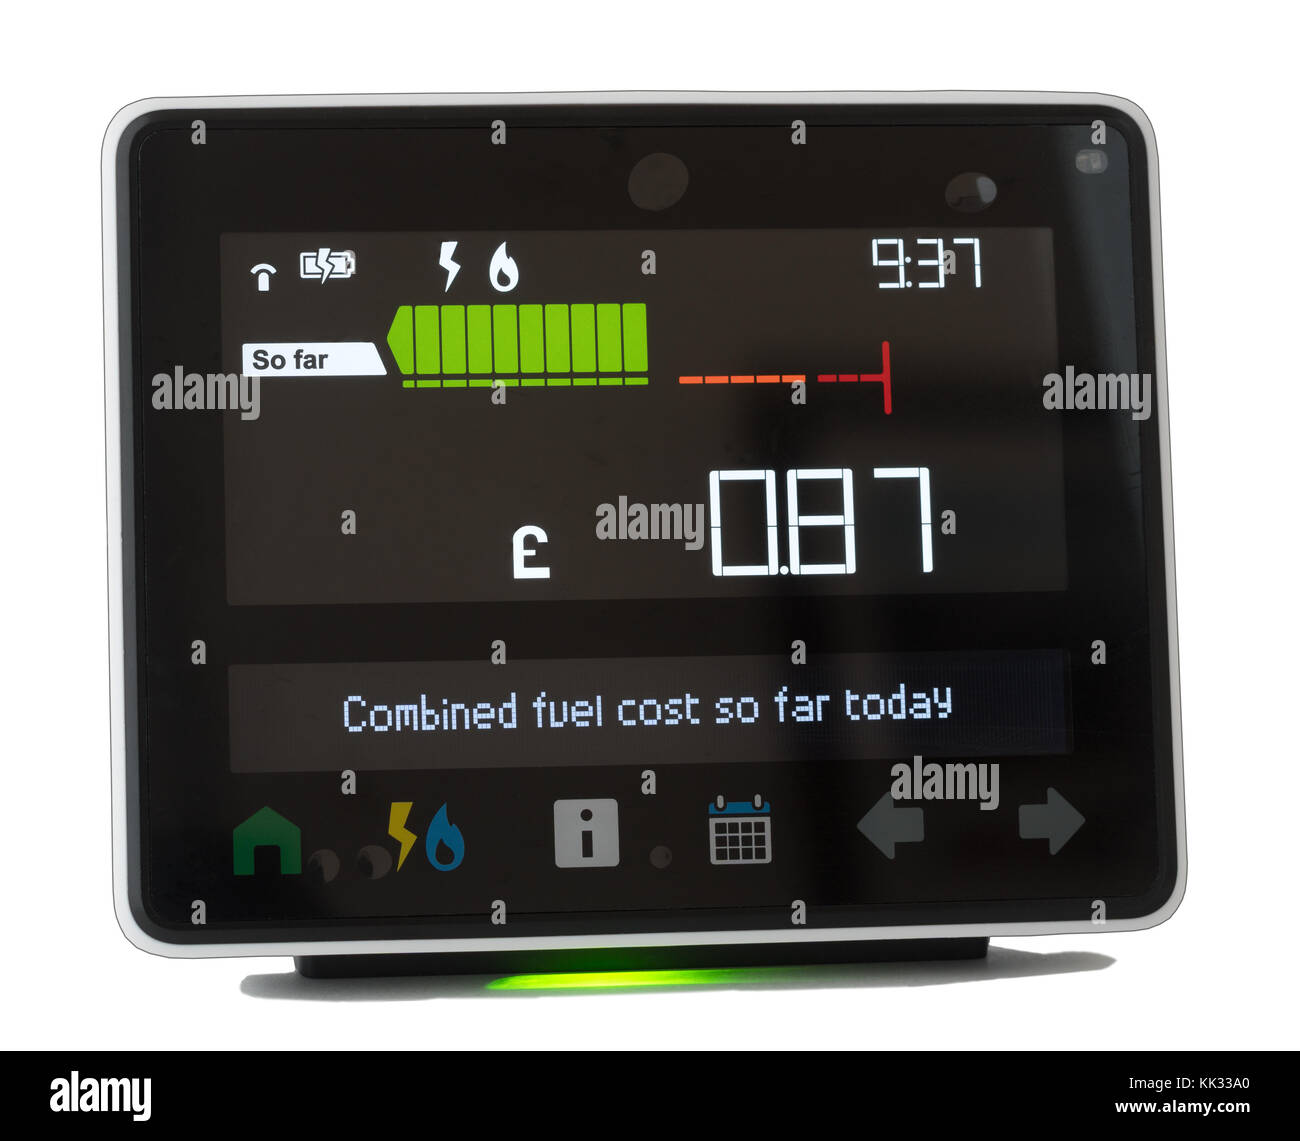 Chameleon Technology smart meter display showing energy usage within a domestic house, England, UK - Stock Image